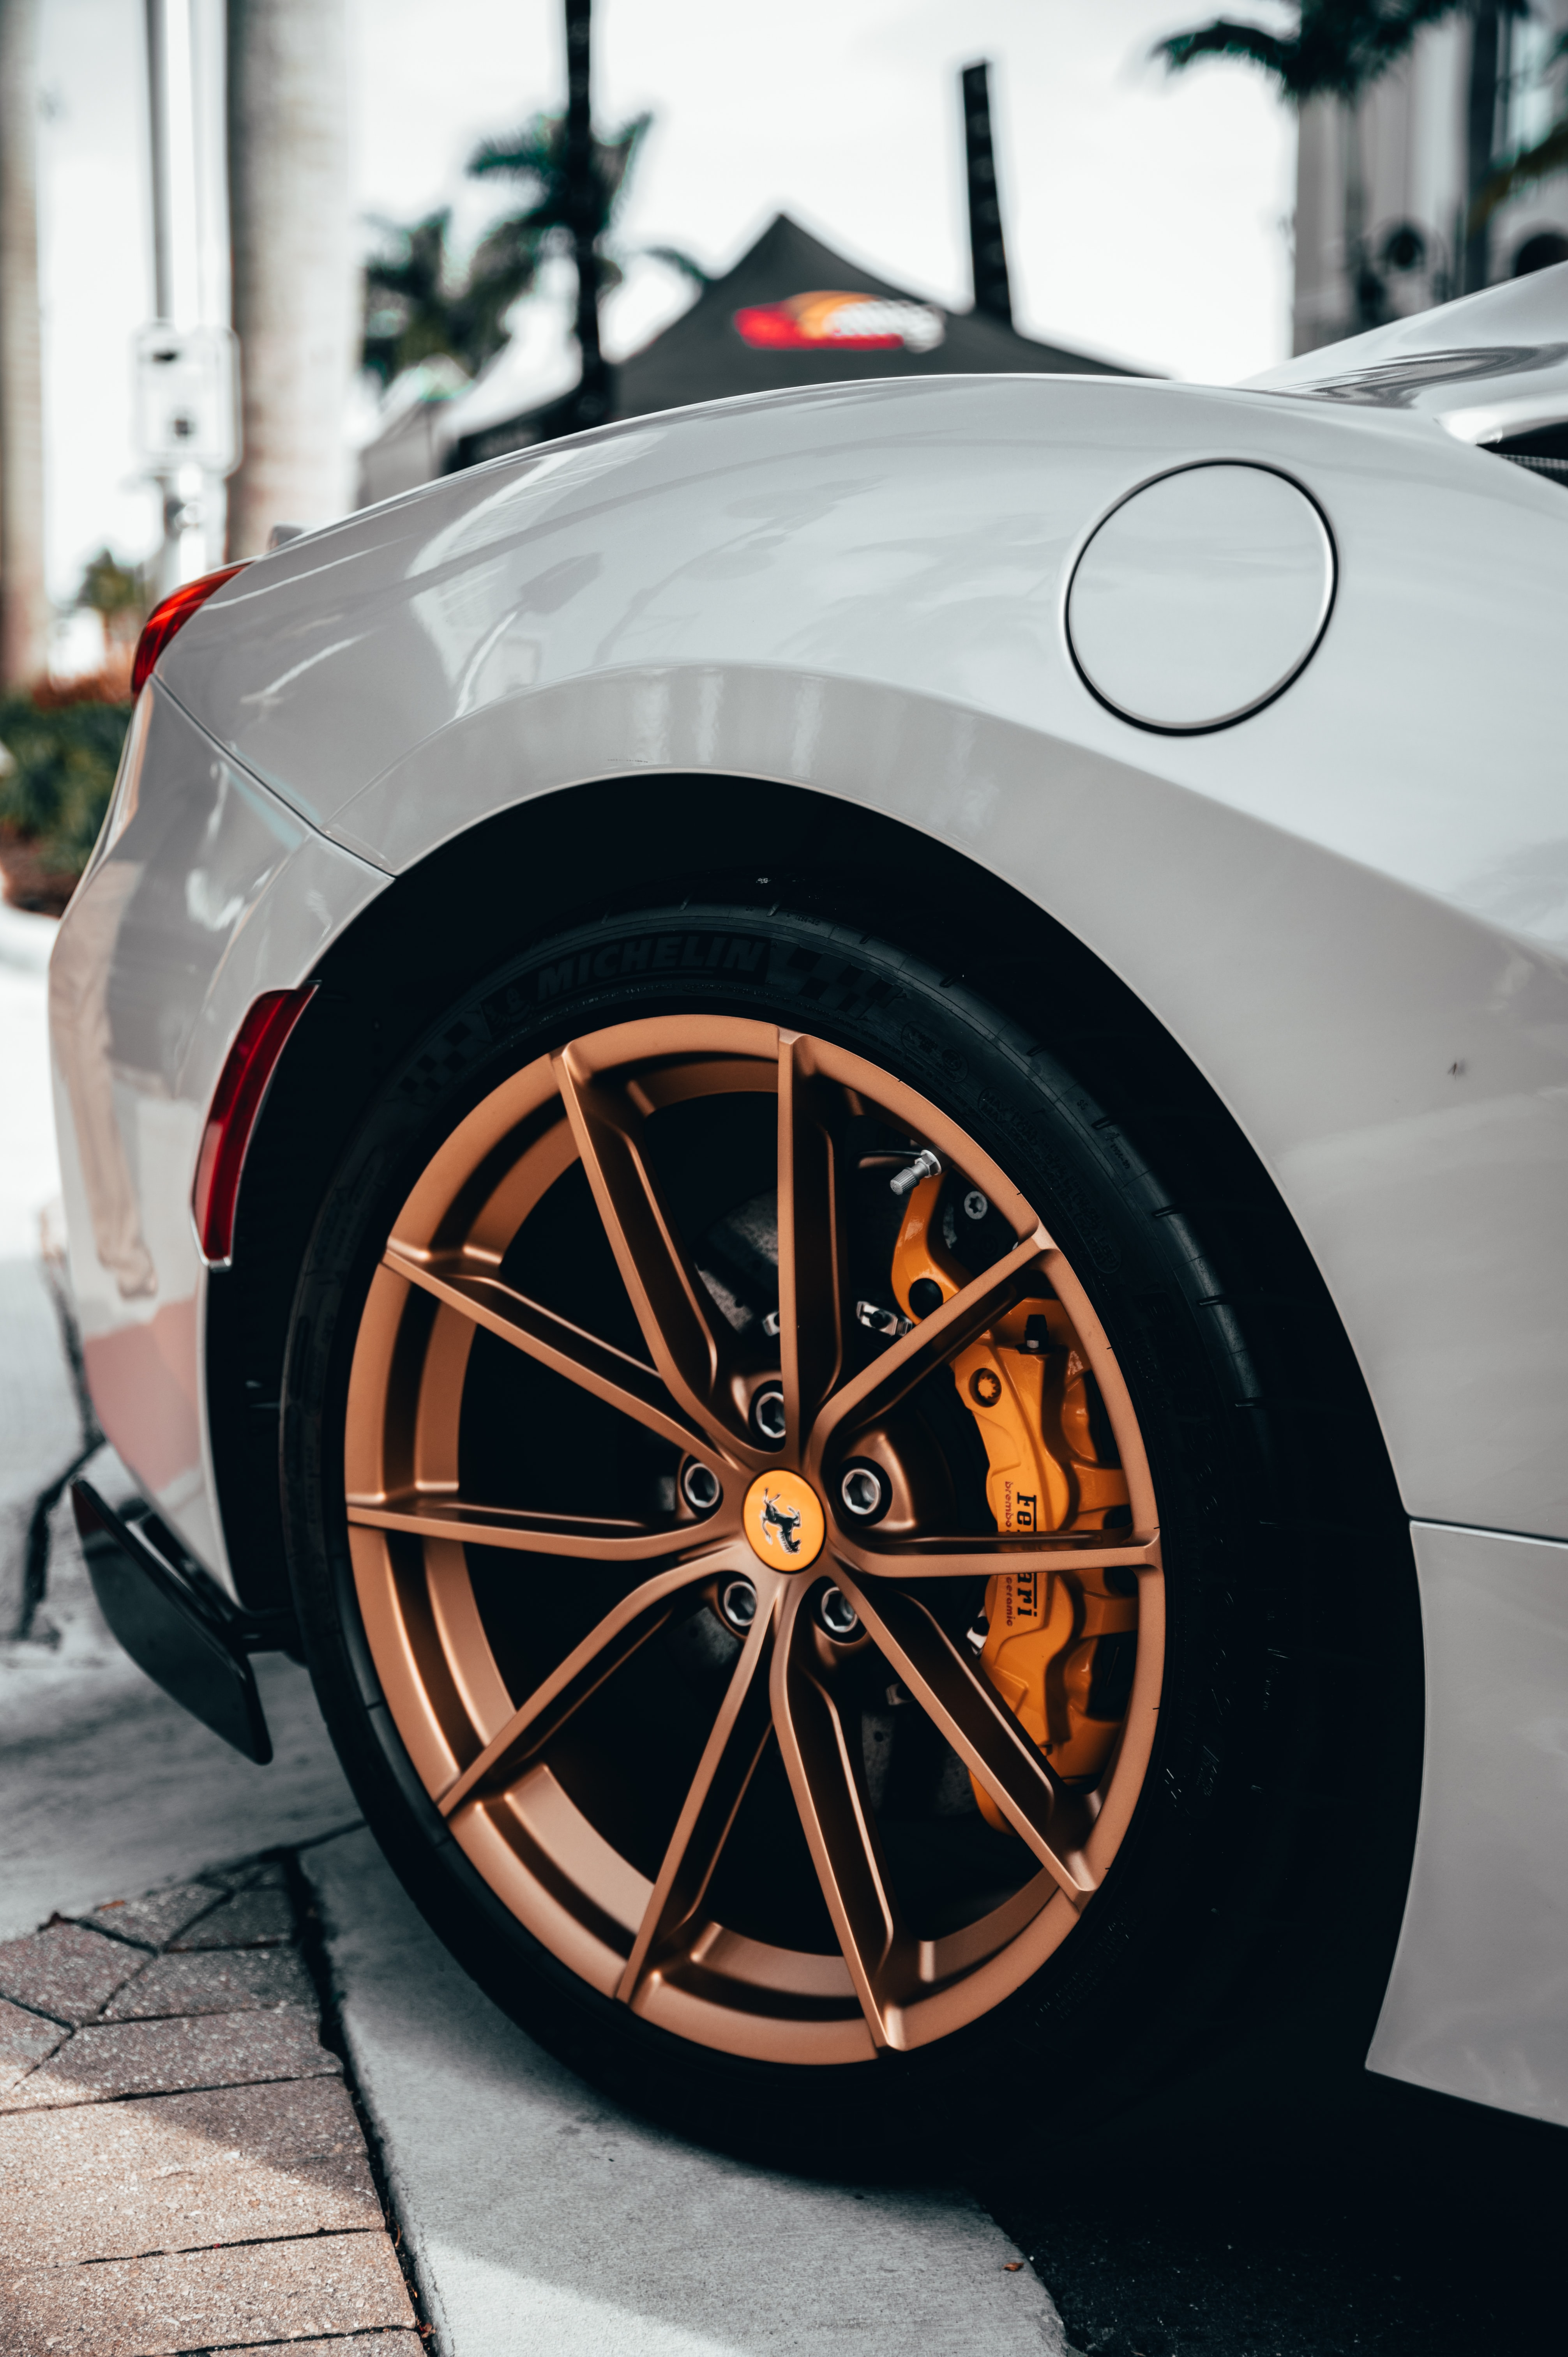 79801 download wallpaper Cars, Ferrari, Car, Machine, Sports Car, Sports, Wheel screensavers and pictures for free